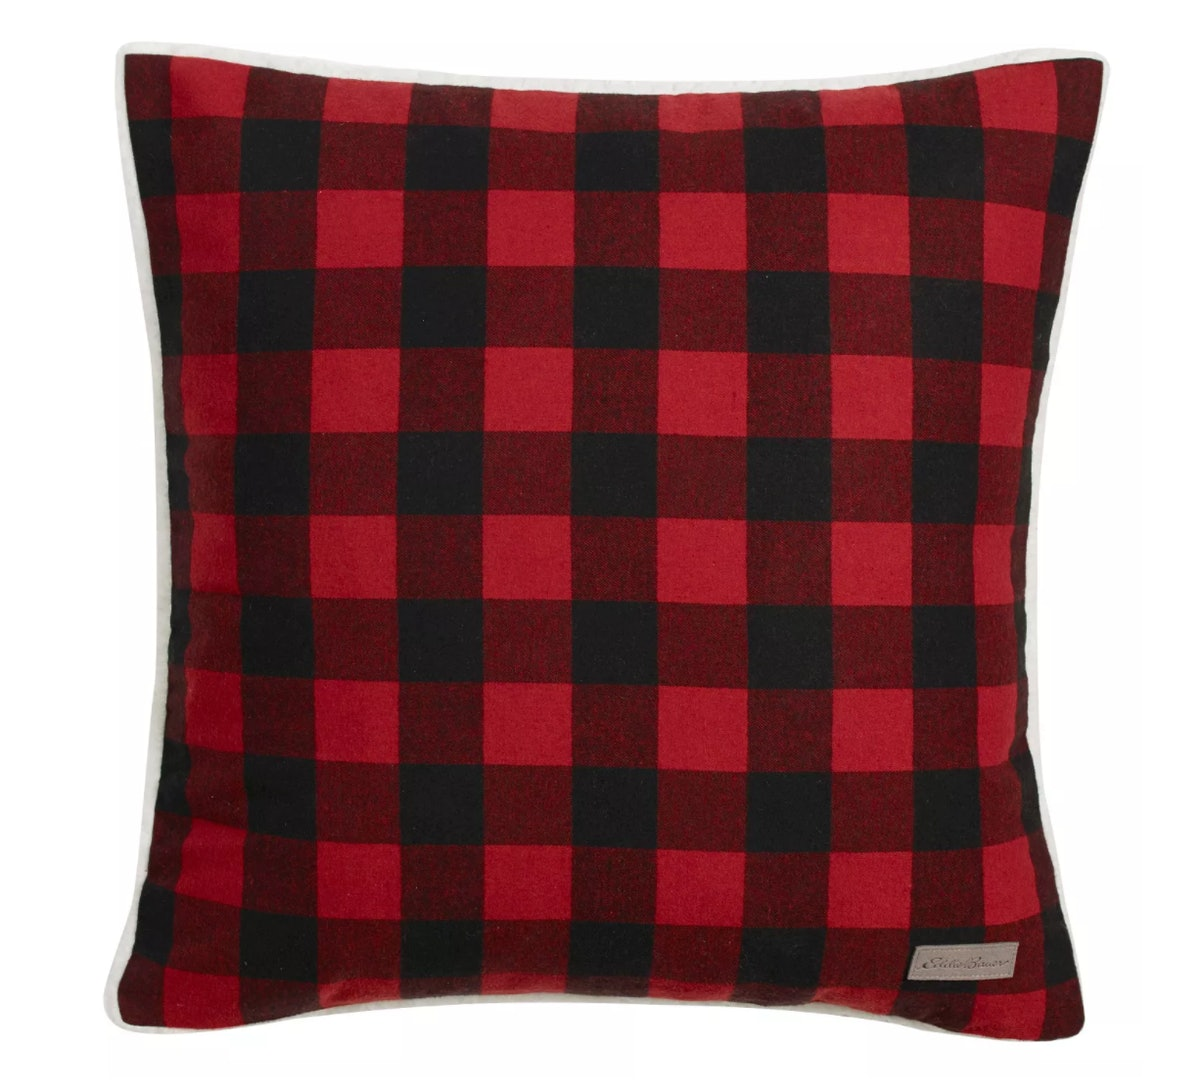 Plaid Flannel Throw Pillow